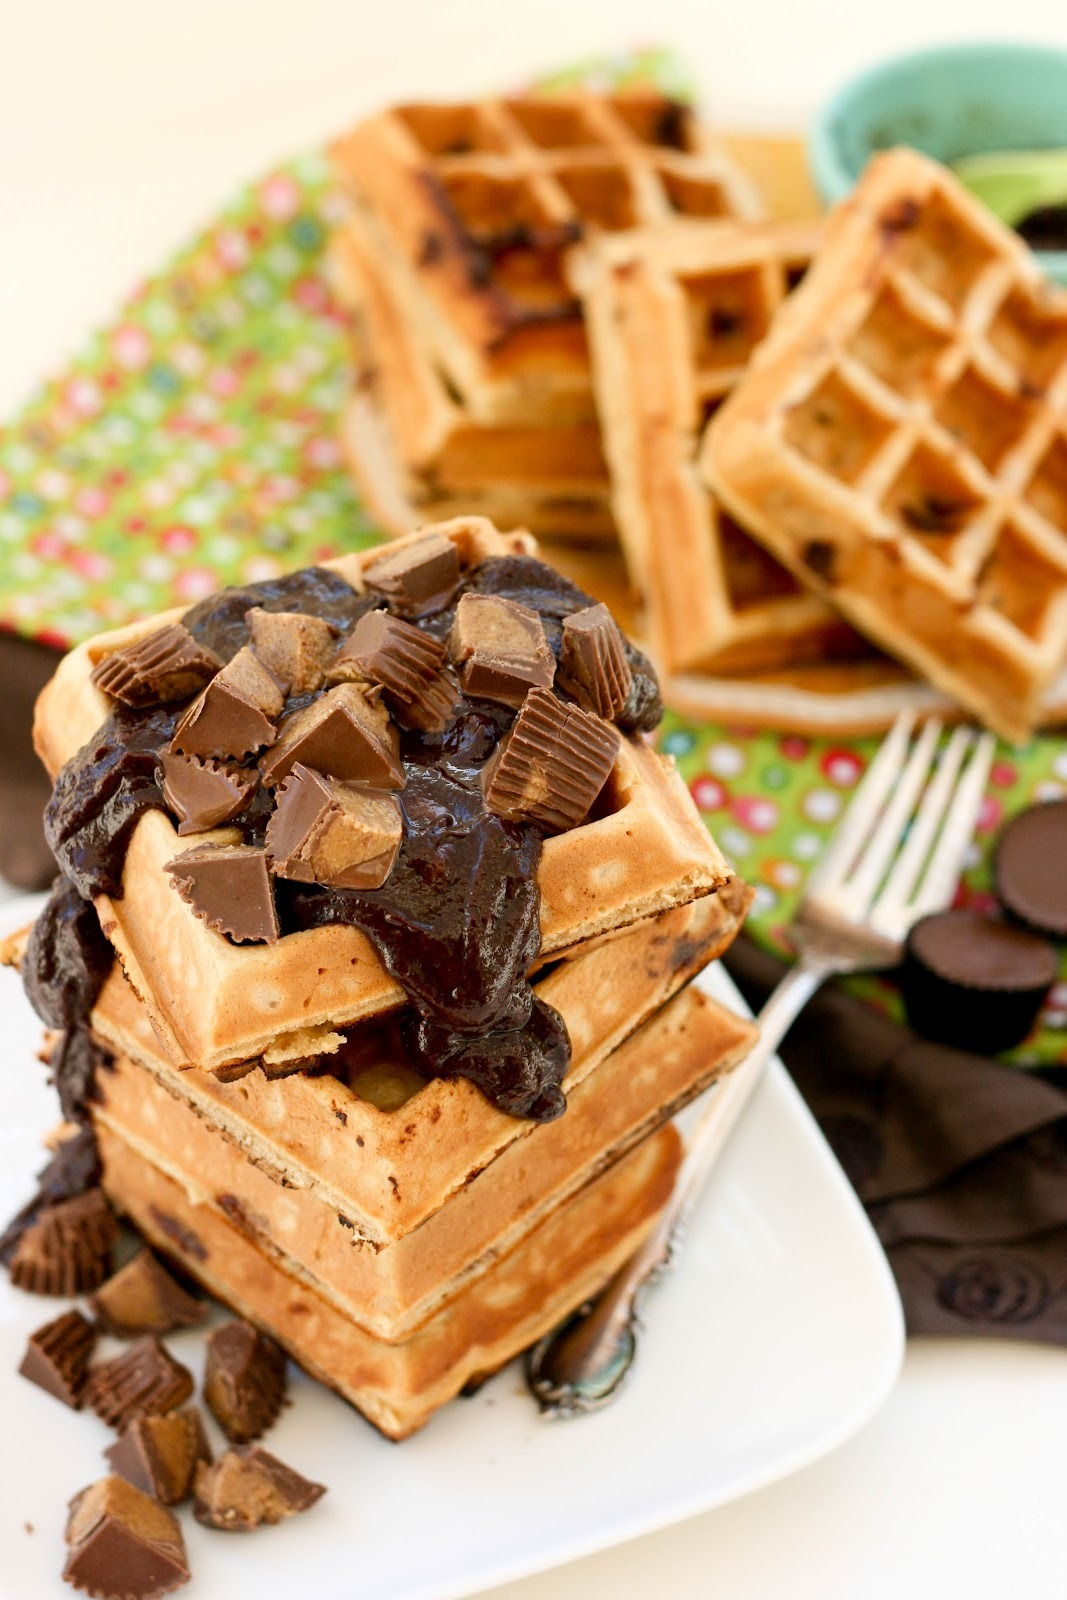 Peanut butter chocolate waffles - OMG